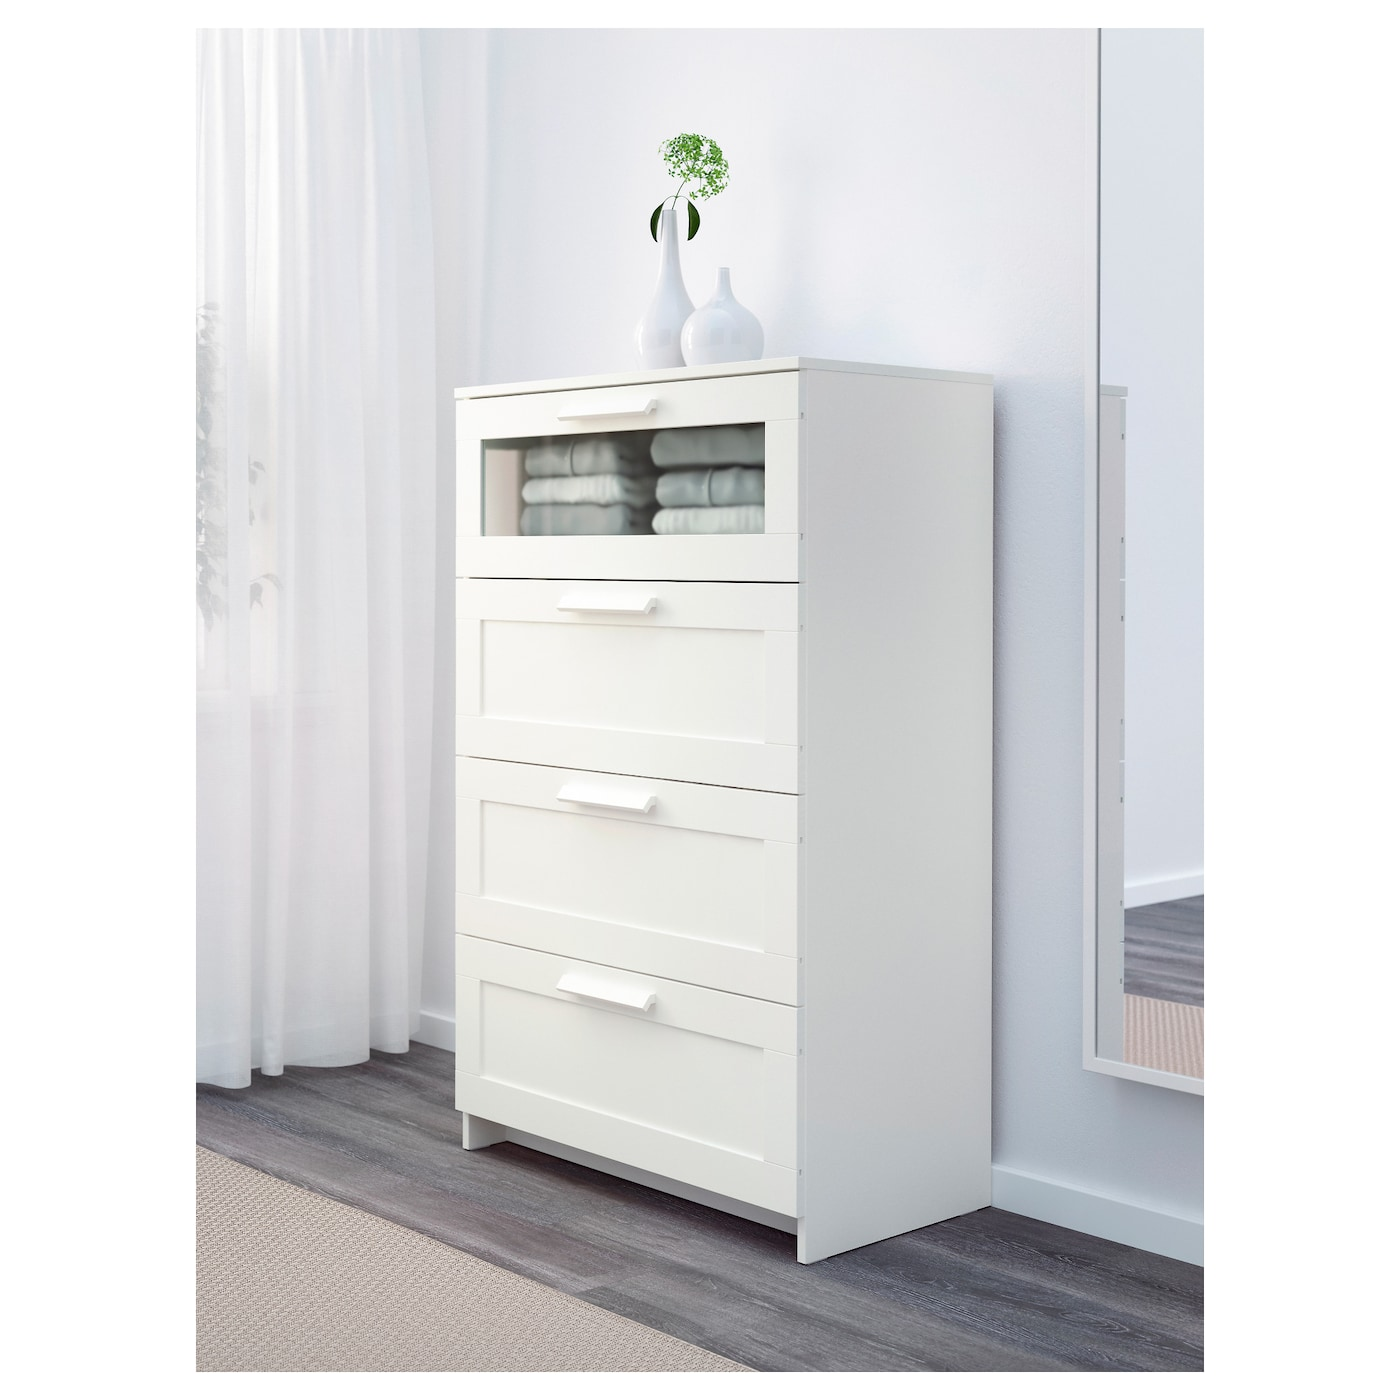 Brimnes commode 4 tiroirs blanc verre givr 78x124 cm ikea for Commode 4 tiroirs ikea